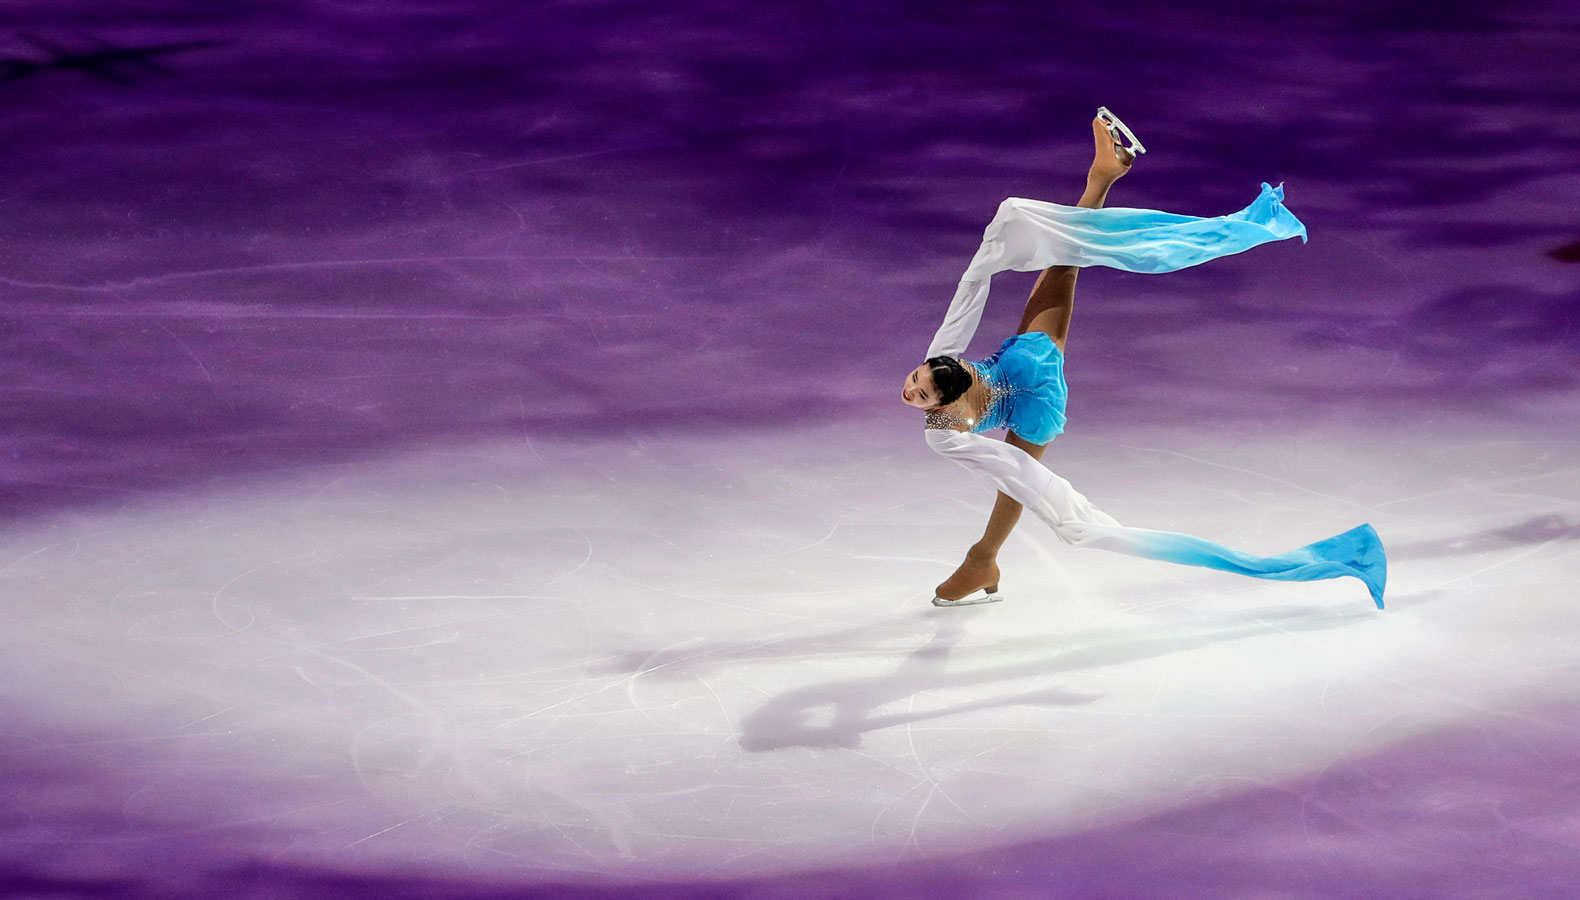 Karen Chen performs during an exhibition event at the U.S. Figure Skating Championships.